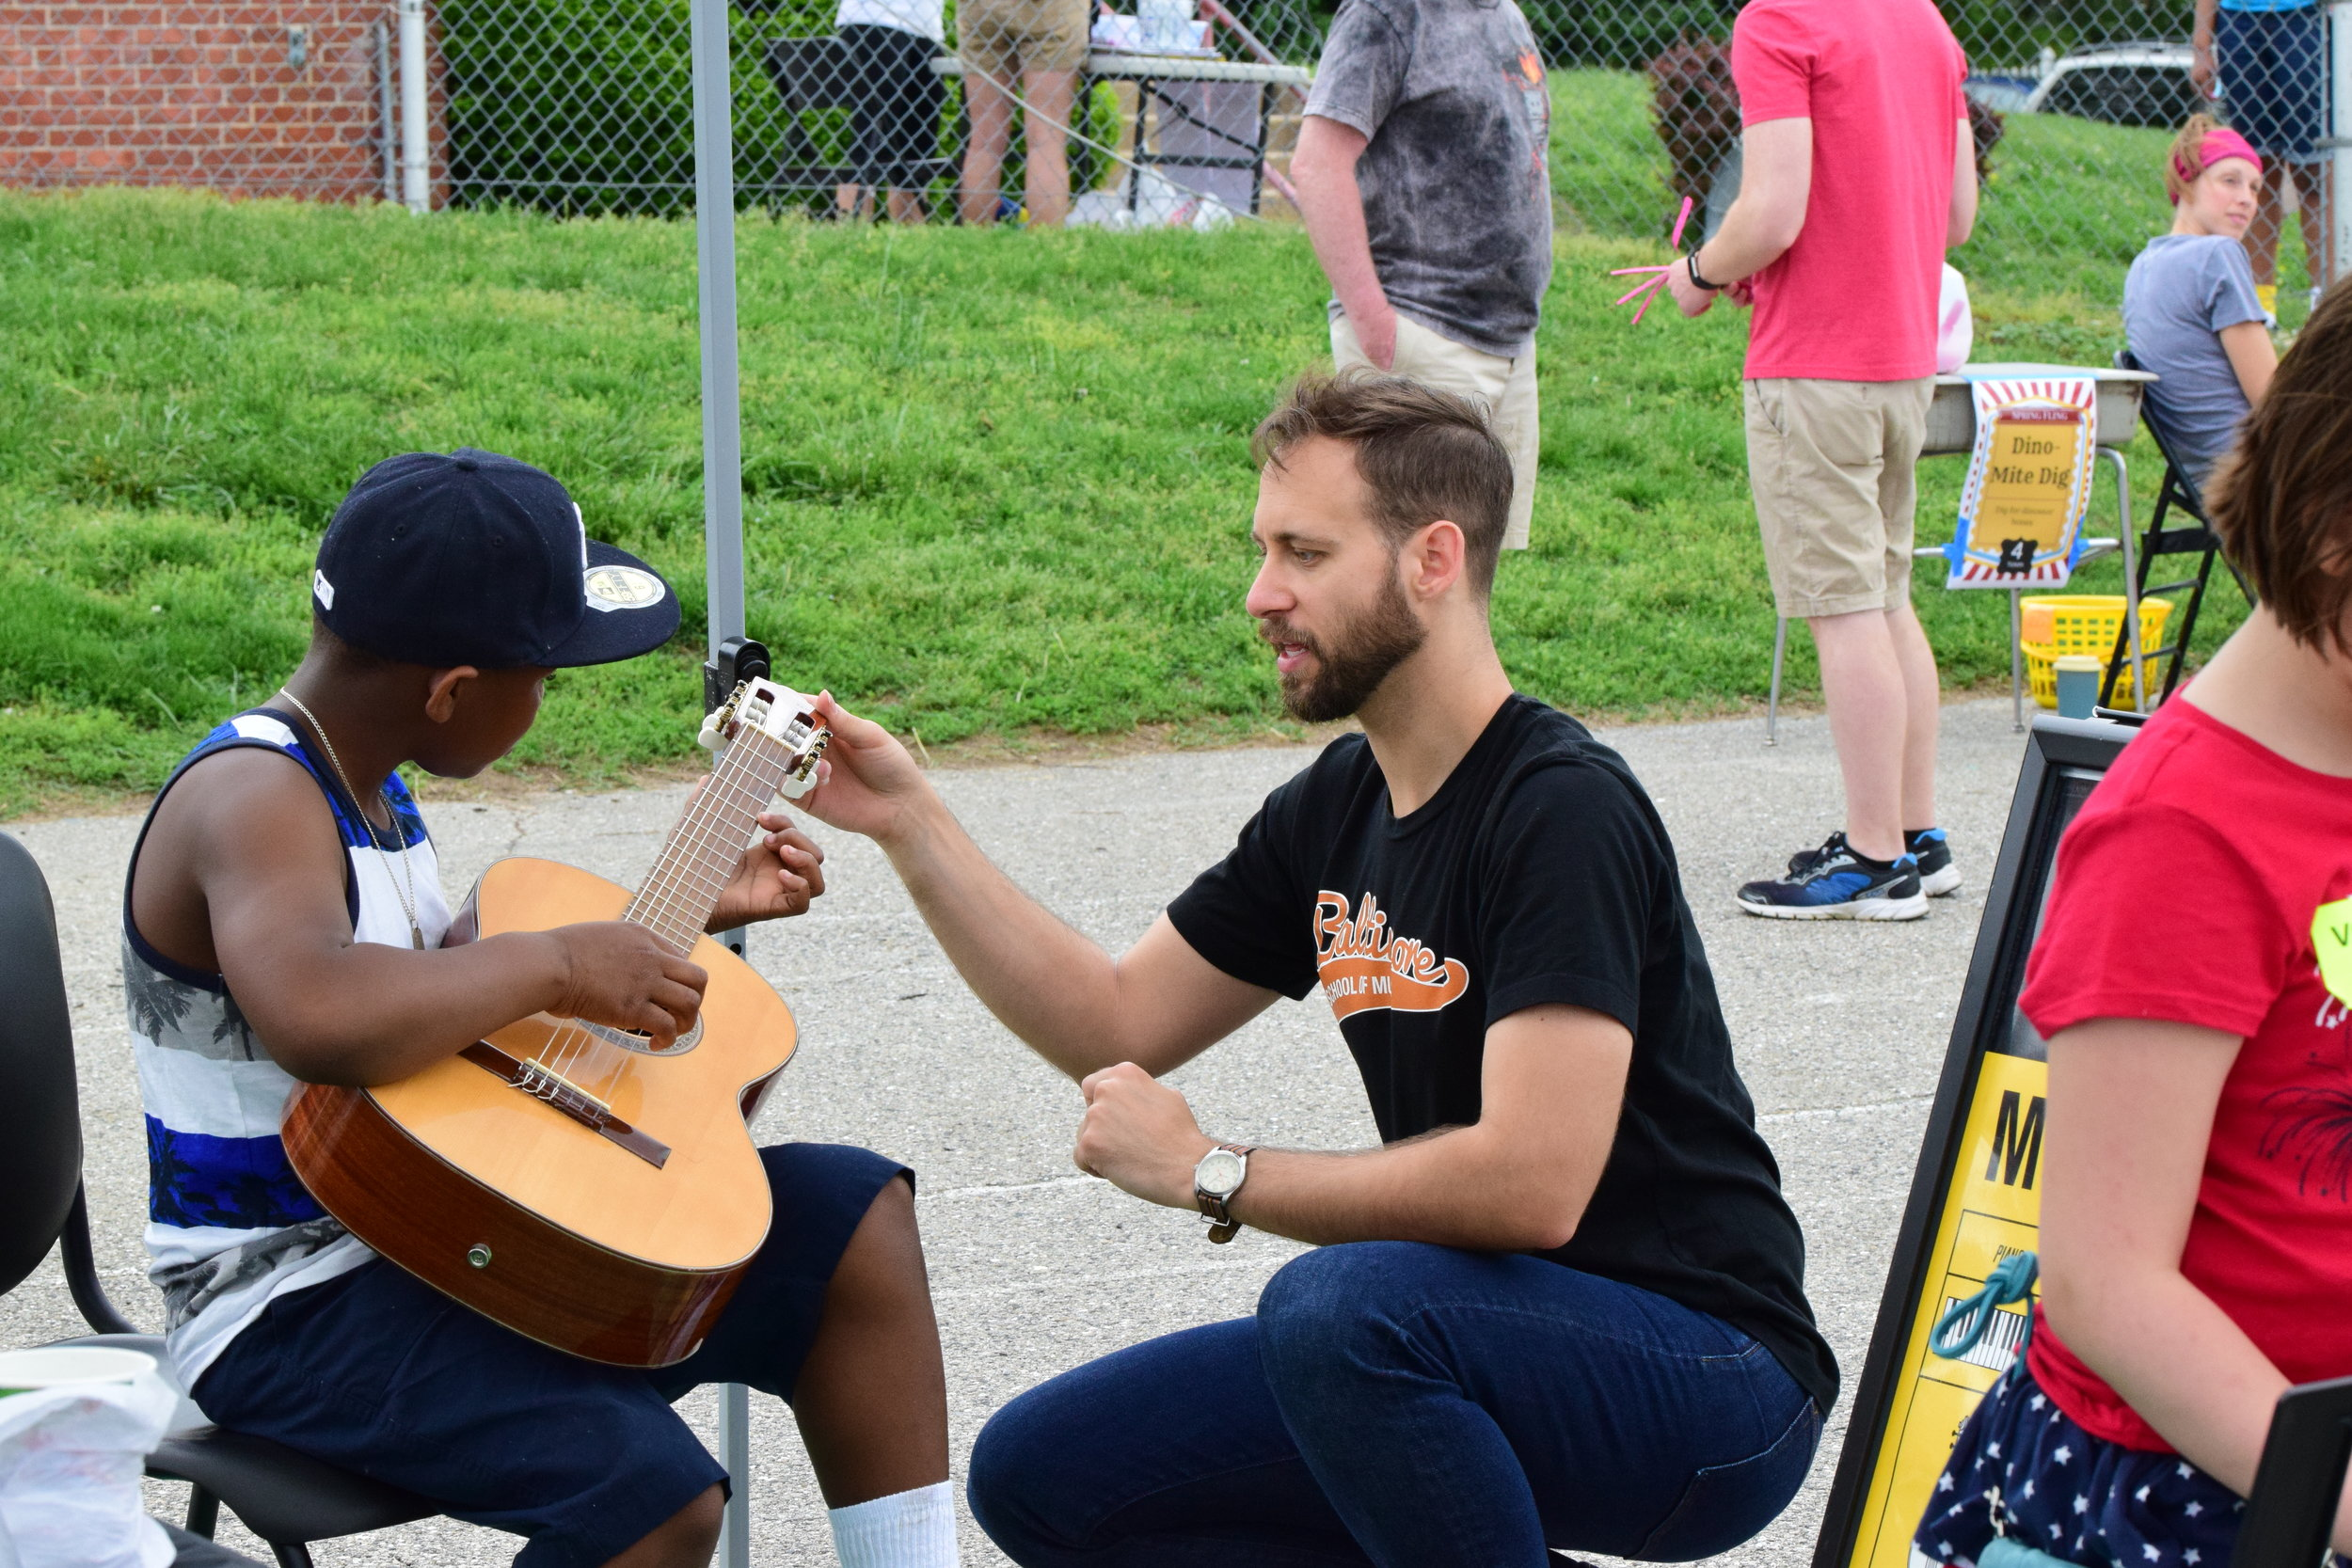 Teaching how to hold and play the guitar at an event in Baltimore City.